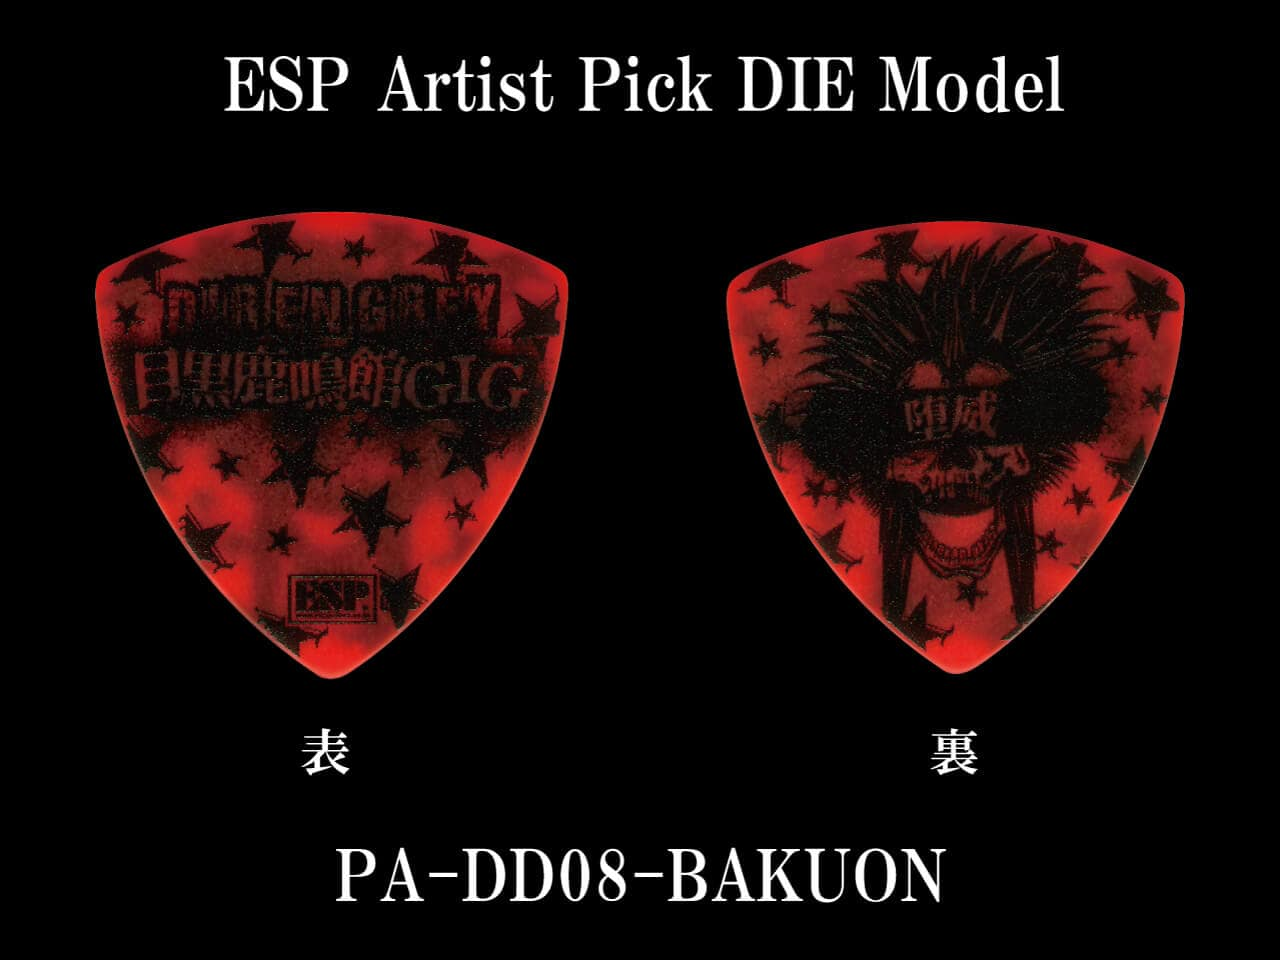 ESP(イーエスピー) Artist Pick Series PA-DD08-BAKUON (DIR EN GREY/Die Model)